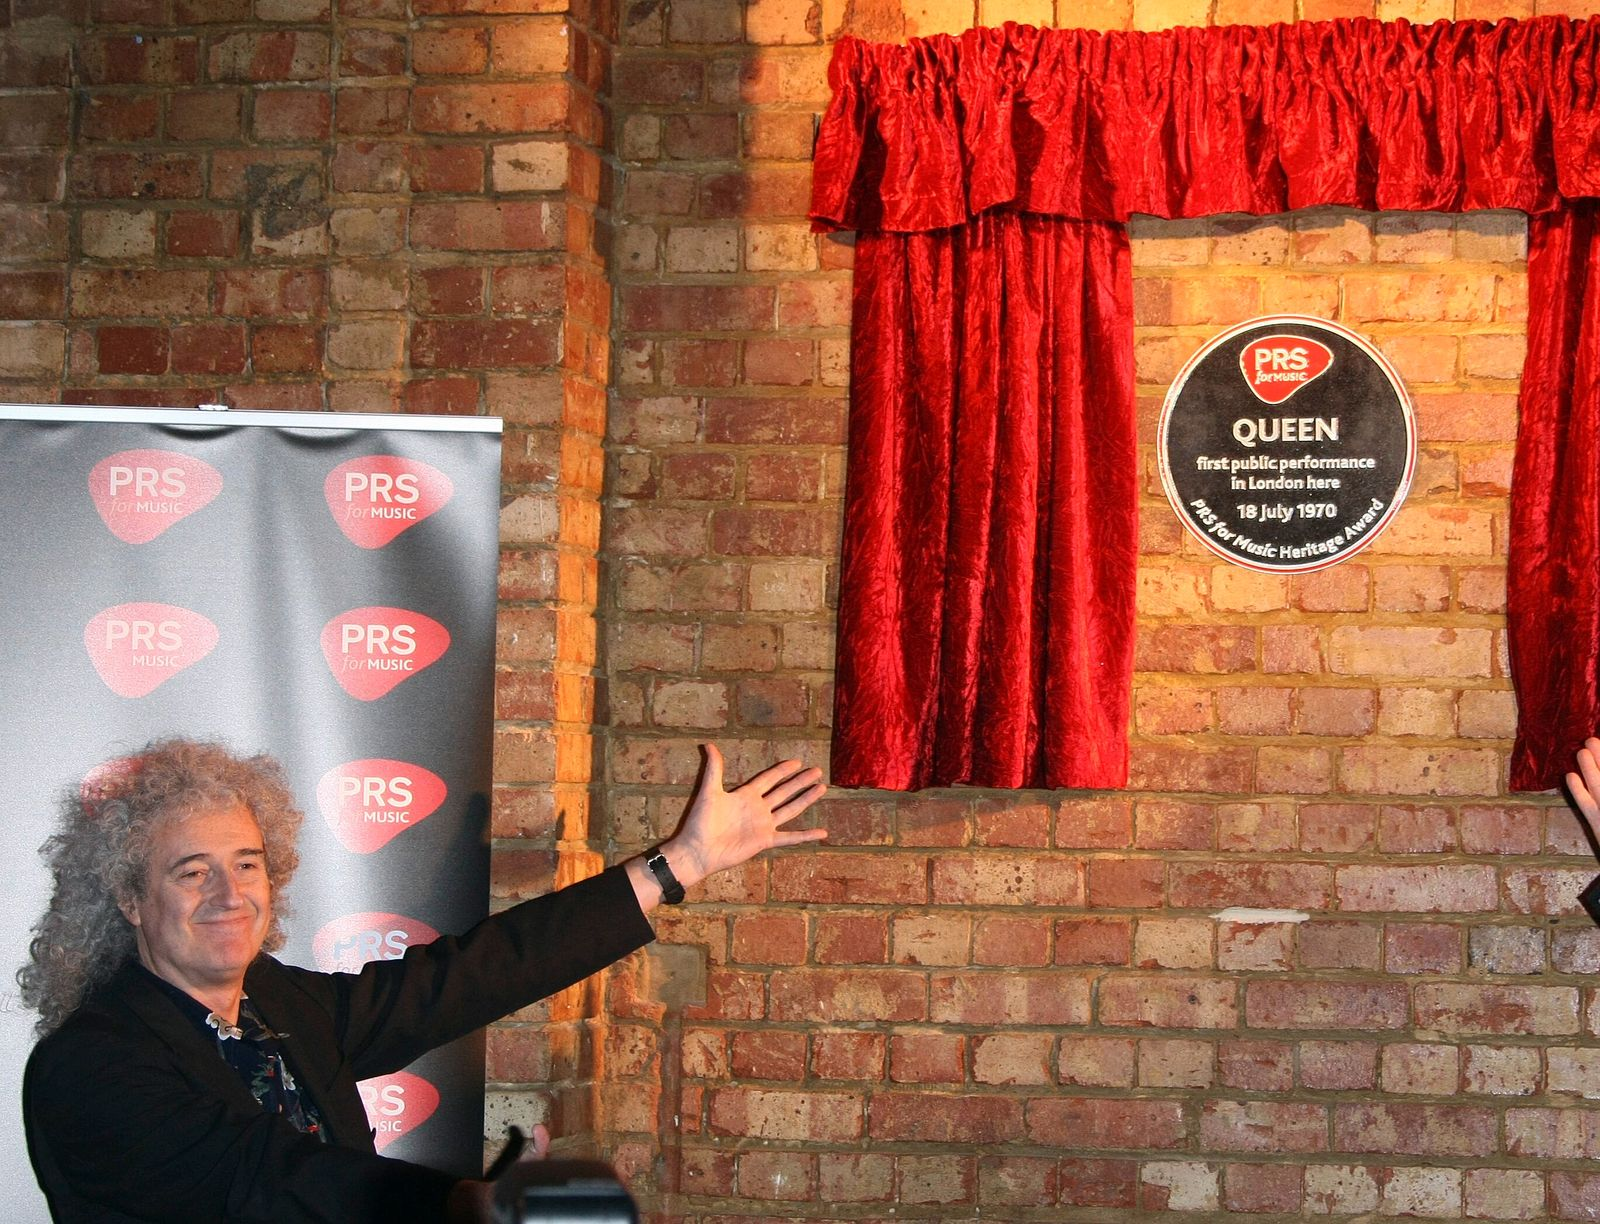 Brian May Member Of Queen Prs For Music Honours Queen With A Heritage Award Imperial College, London, , UK 05 March 2013